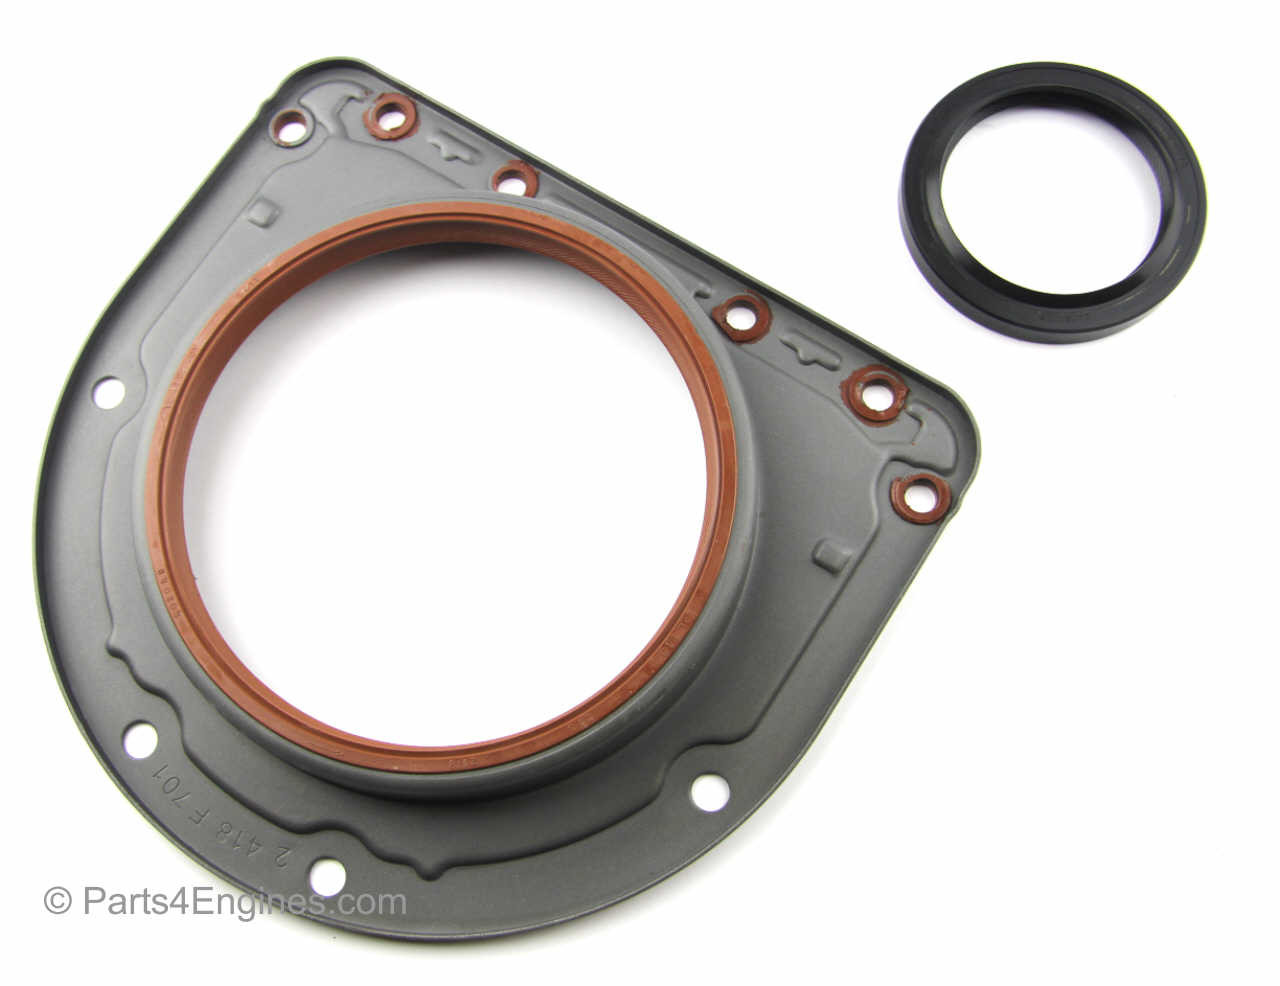 Perkins Phaser 1004 Bottom Gasket Set & seals from parts4engines.com